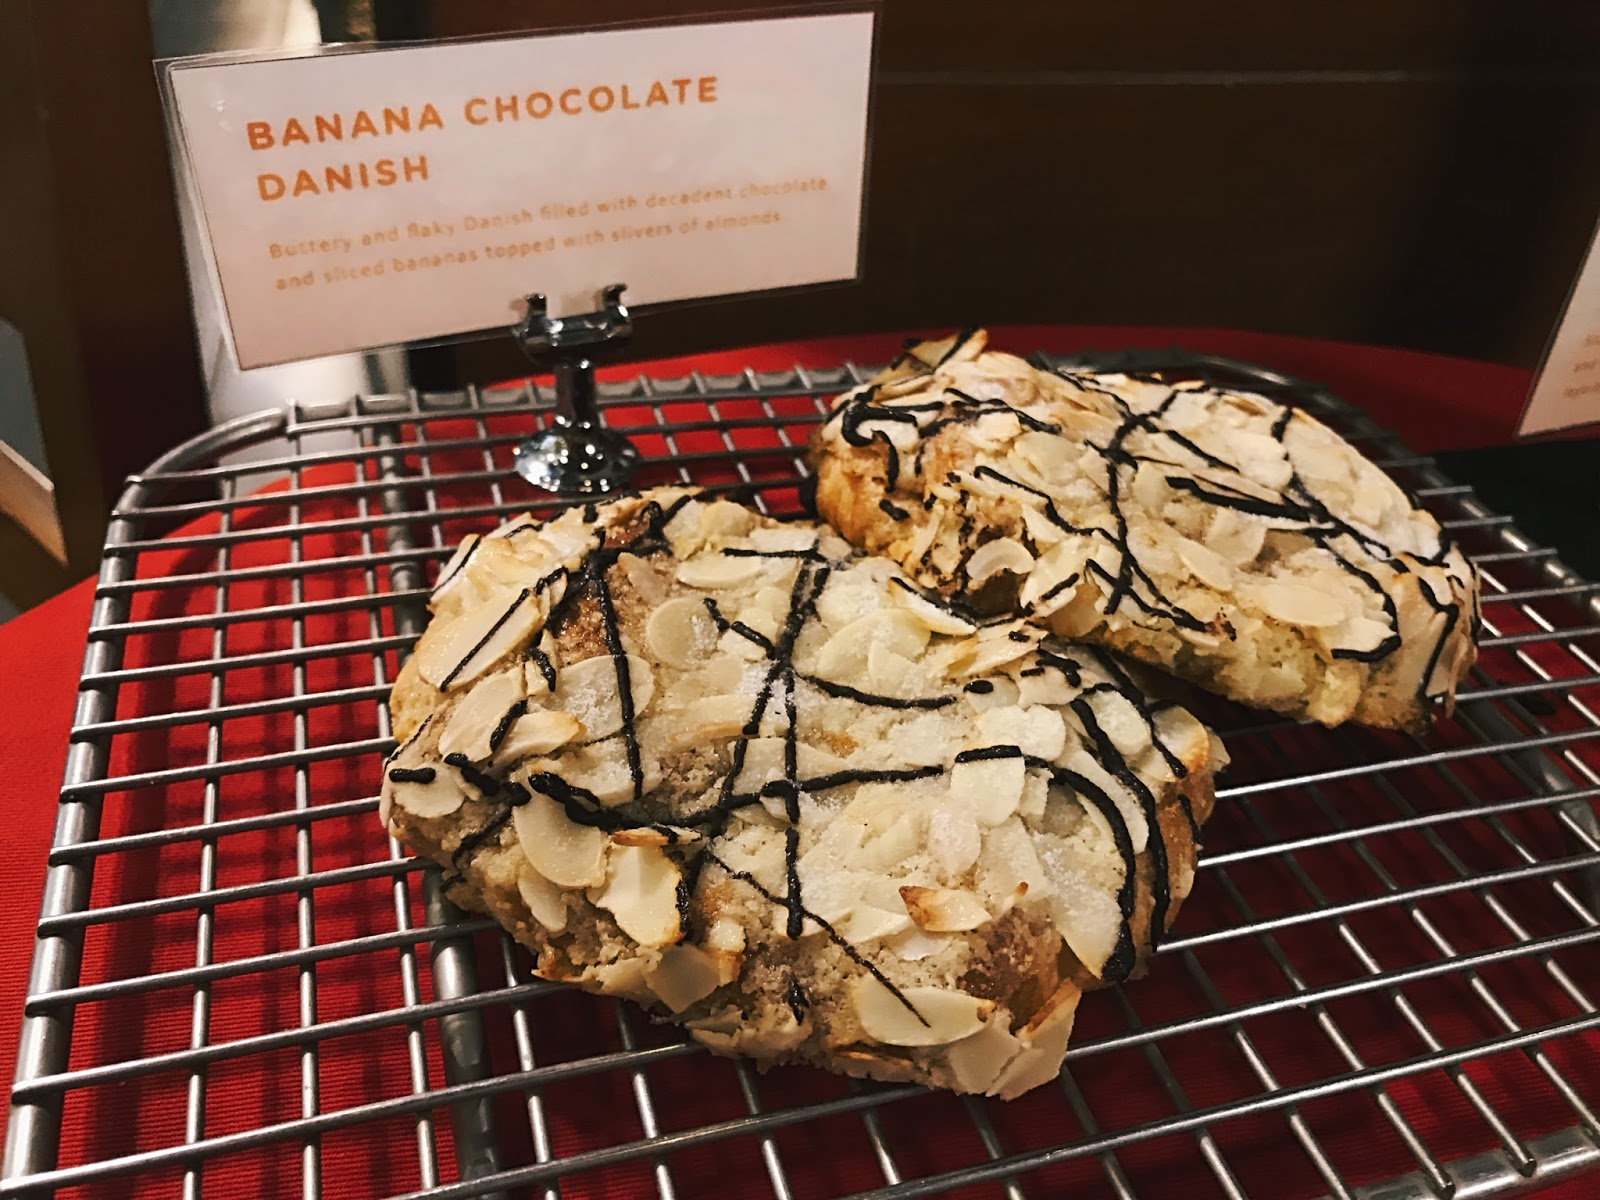 Starbucks Banana Chocolate Danish